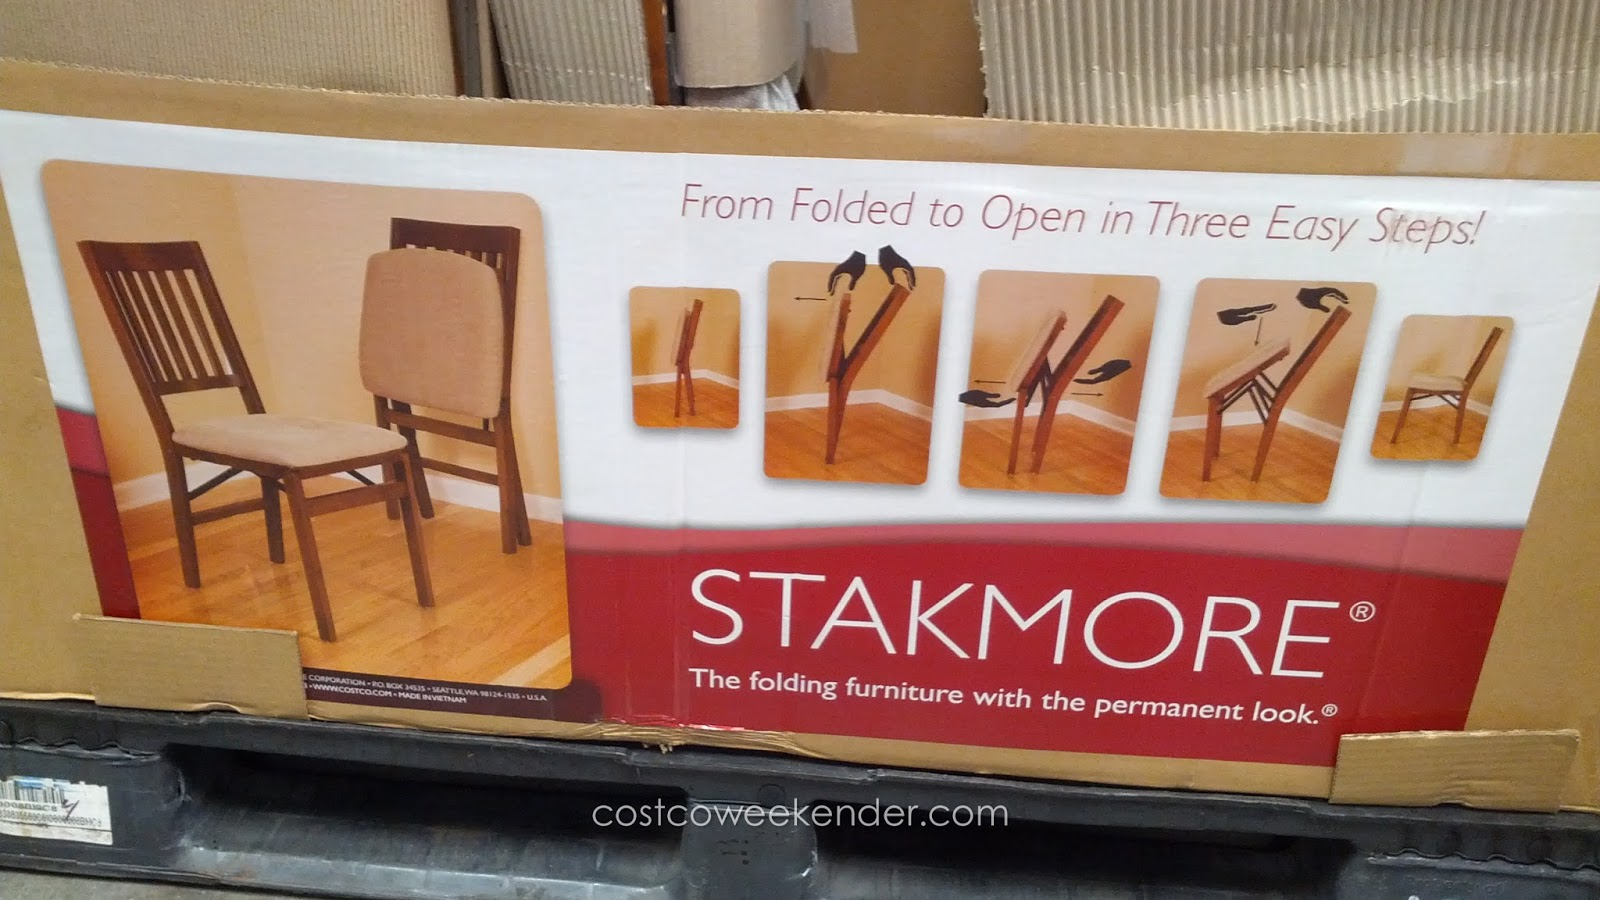 Stakmore Folding Chair: From Folded To Open In Three Easy Steps!